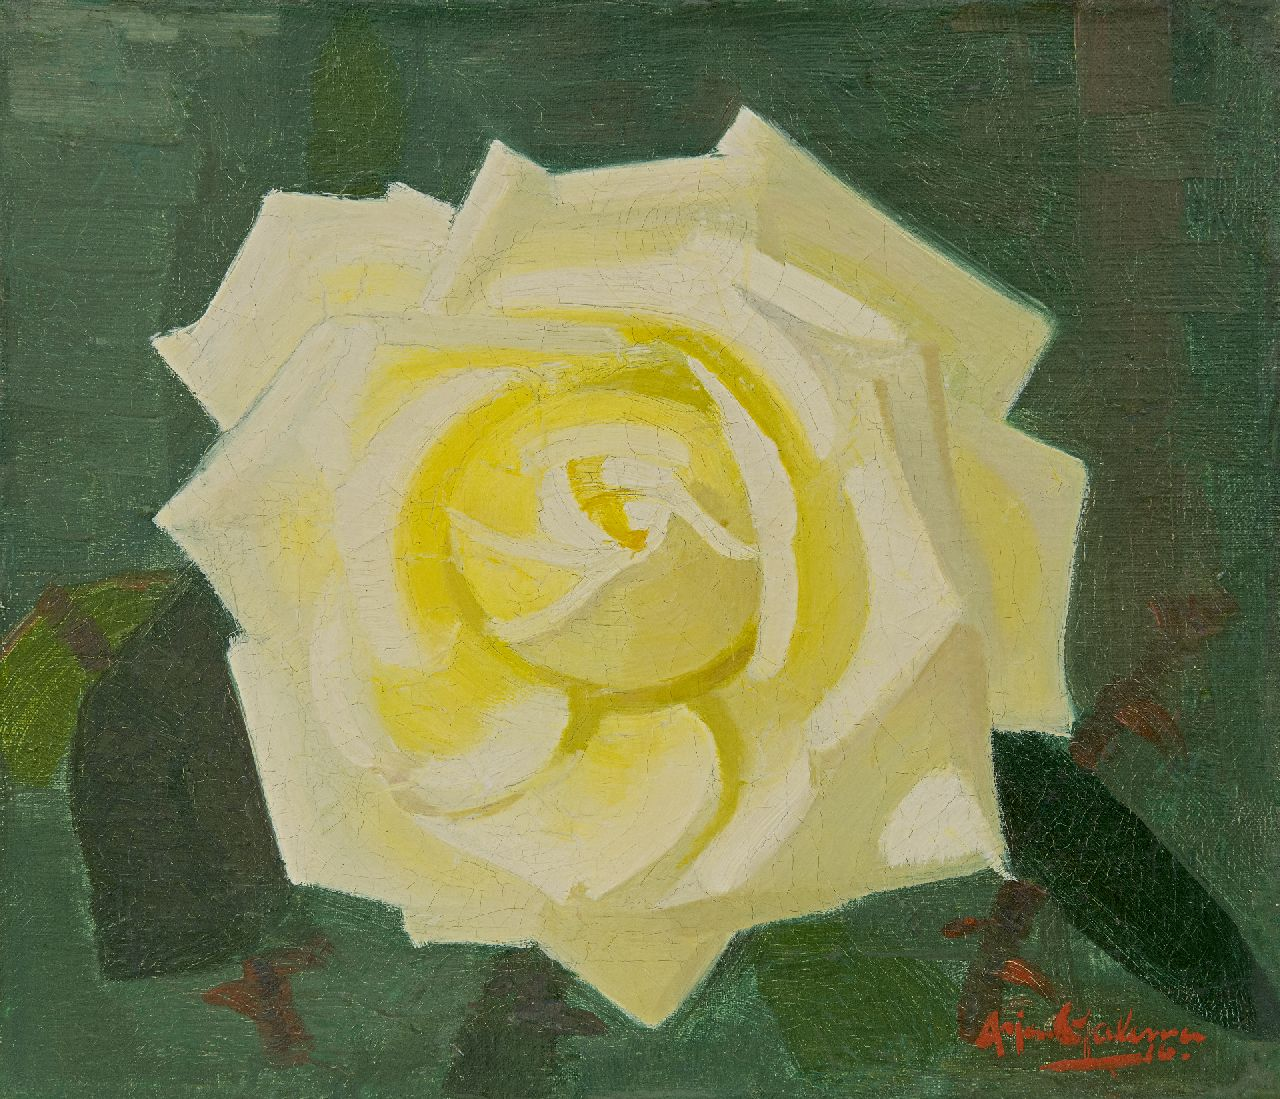 Arjen Galema | Yellow rose, oil on canvas, 25.3 x 29.6 cm, signed l.r.